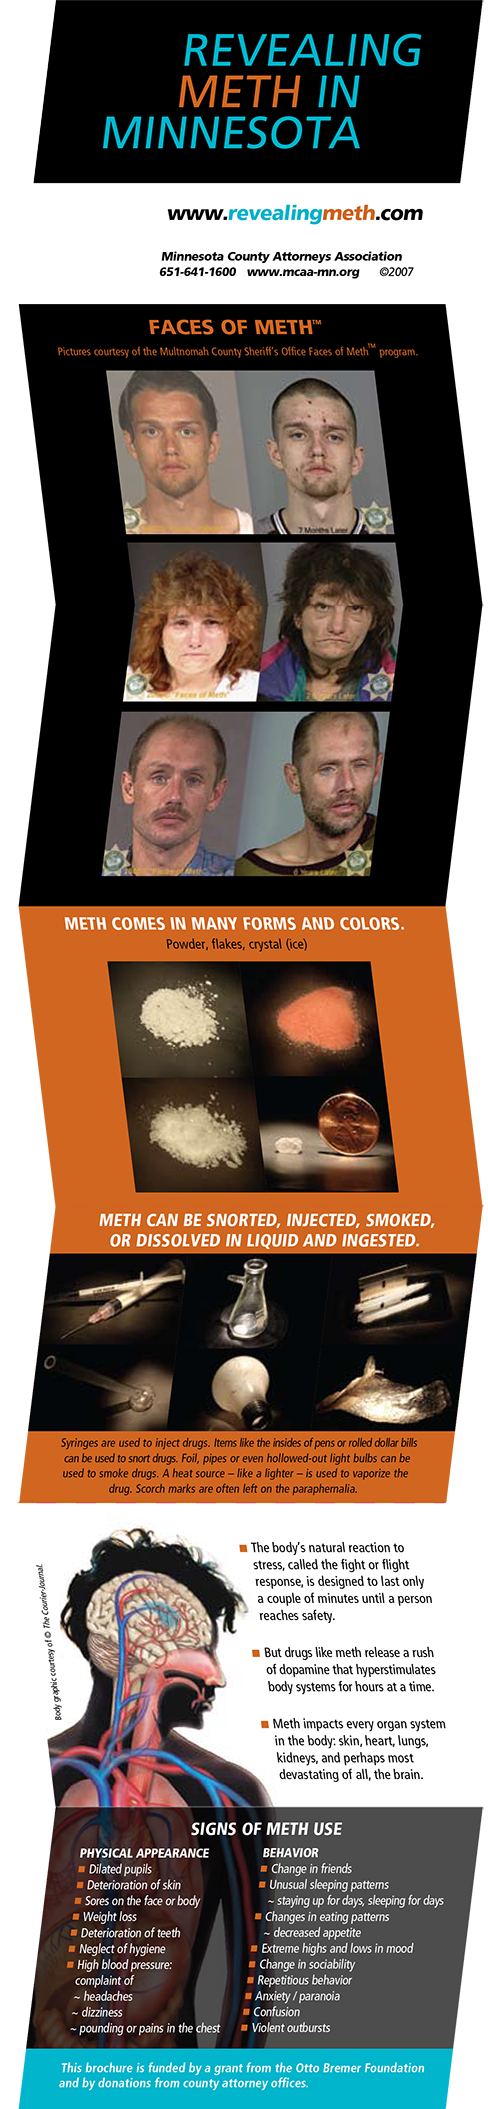 Case Study Image: Minnesota County Attorneys Association Revealing Meth brochure